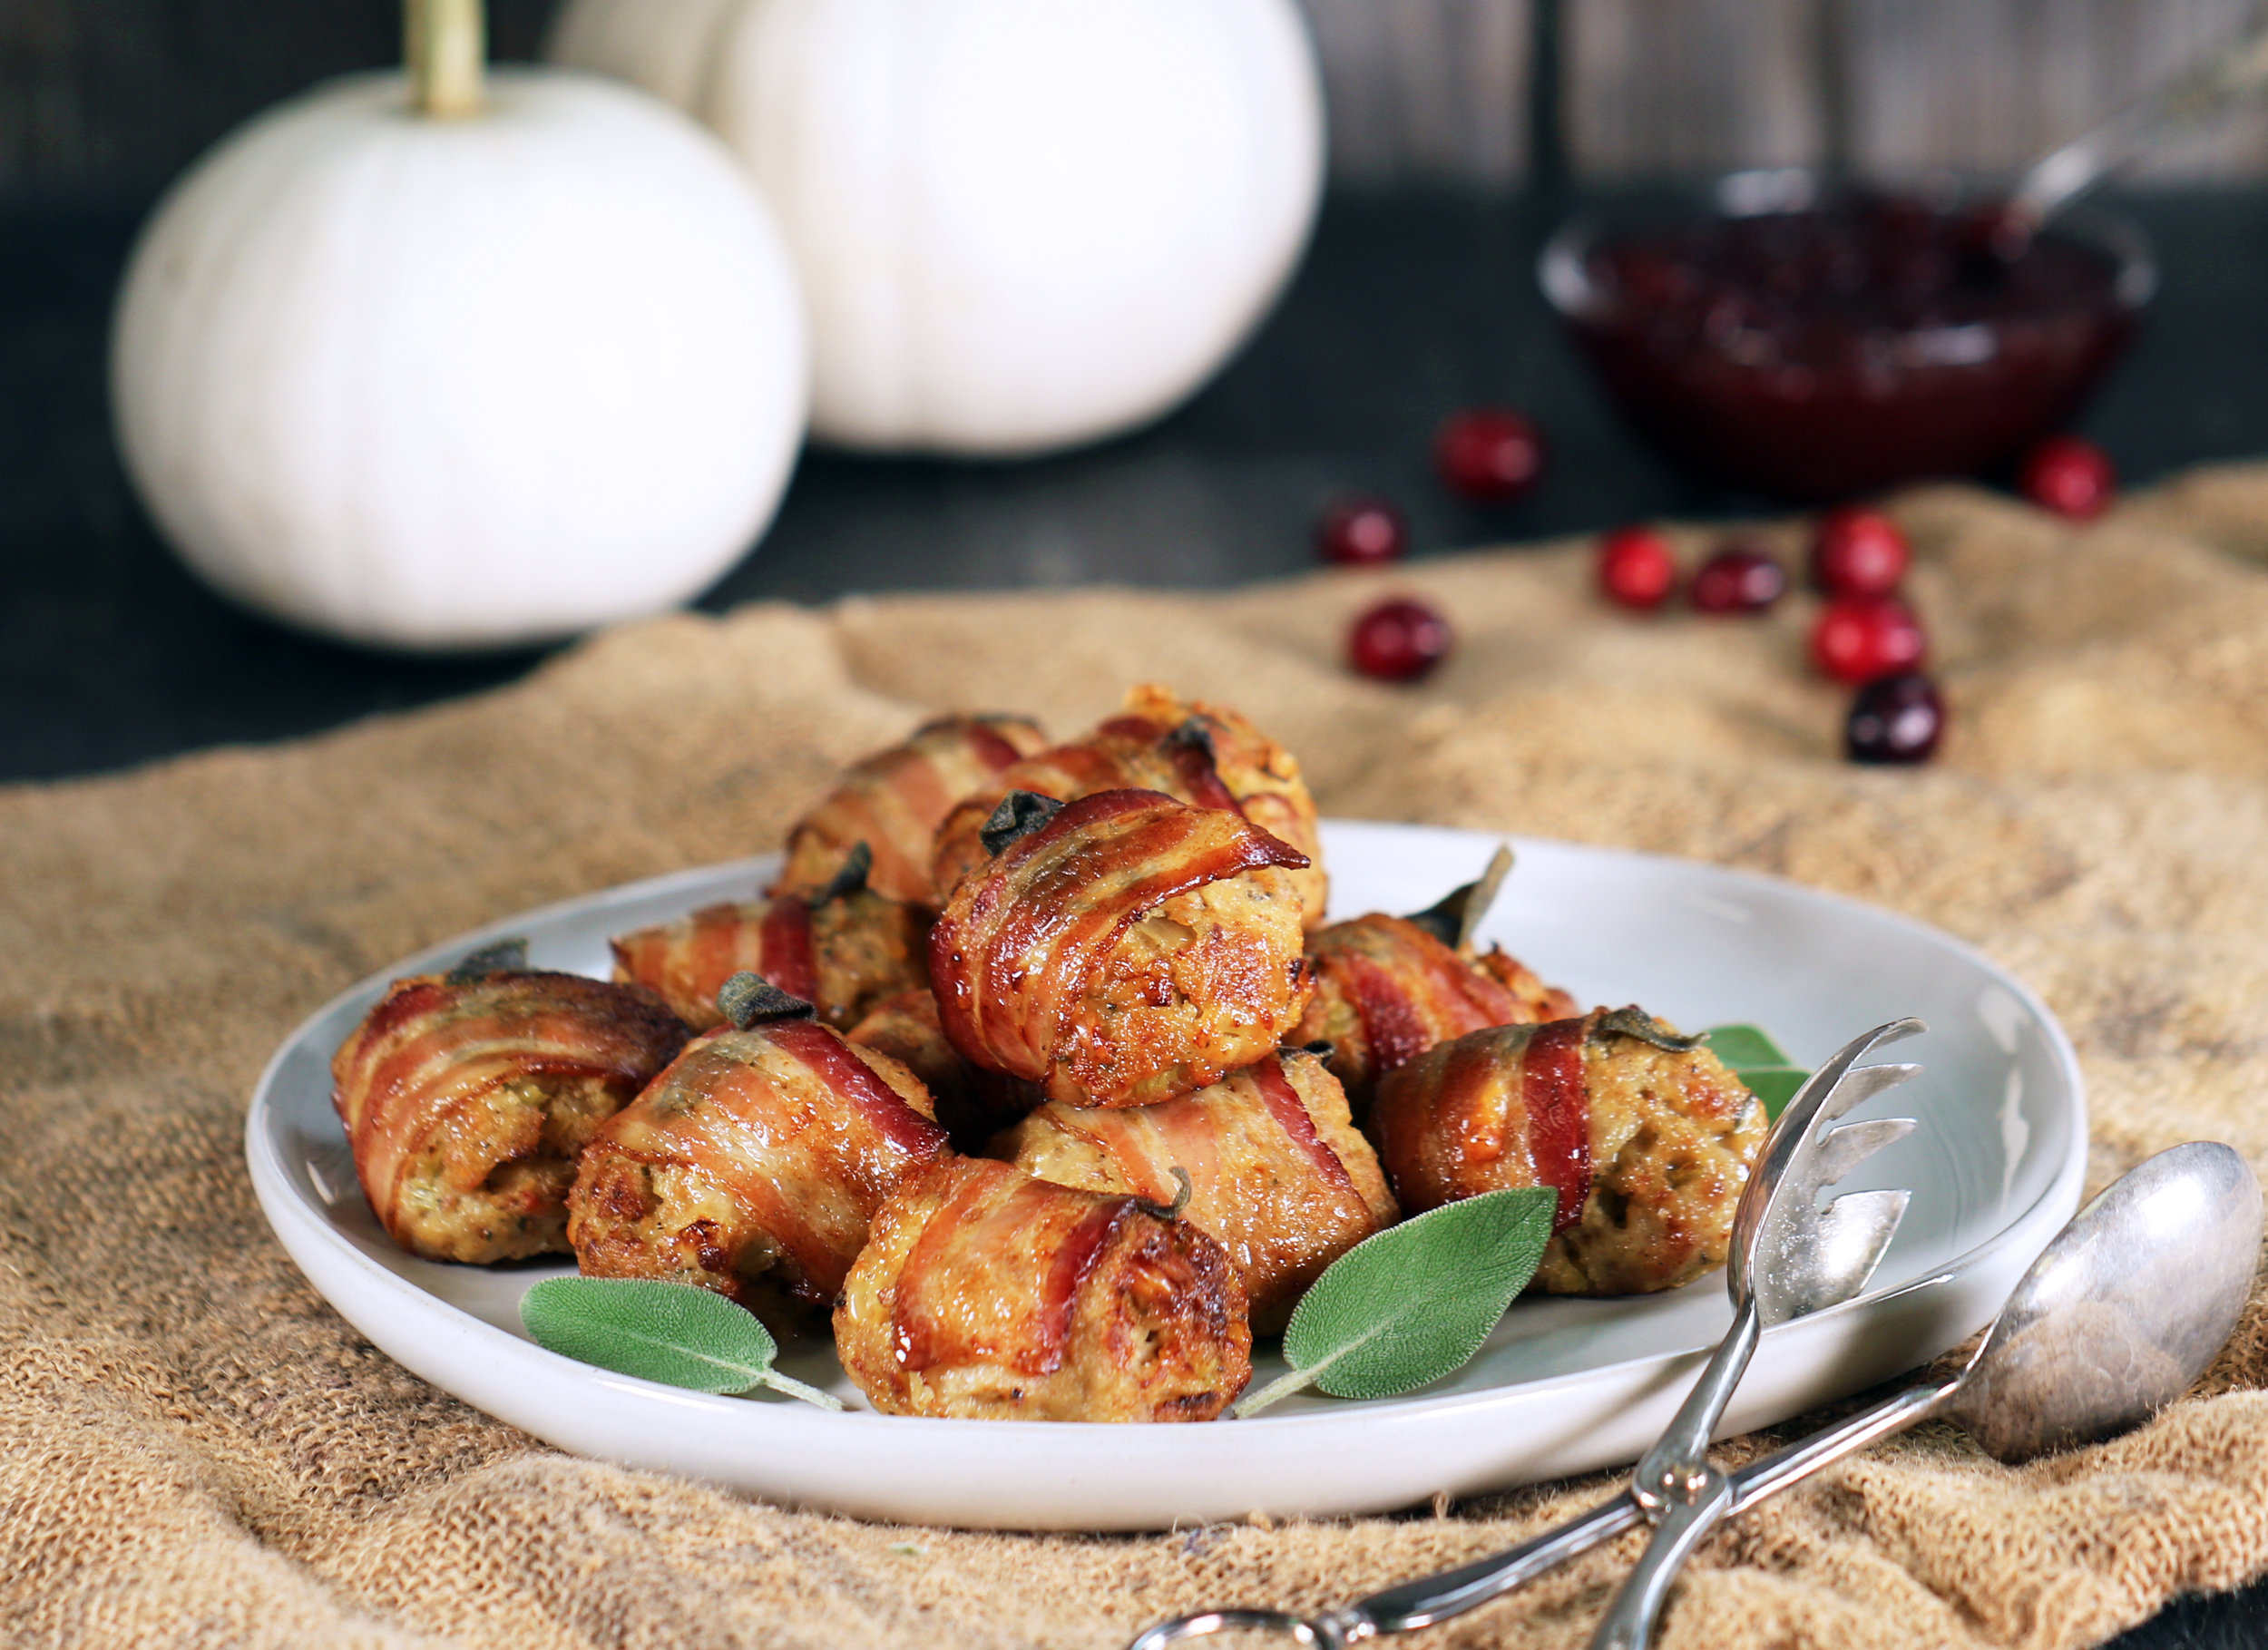 CRISPY BACON & SAGE STUFFING